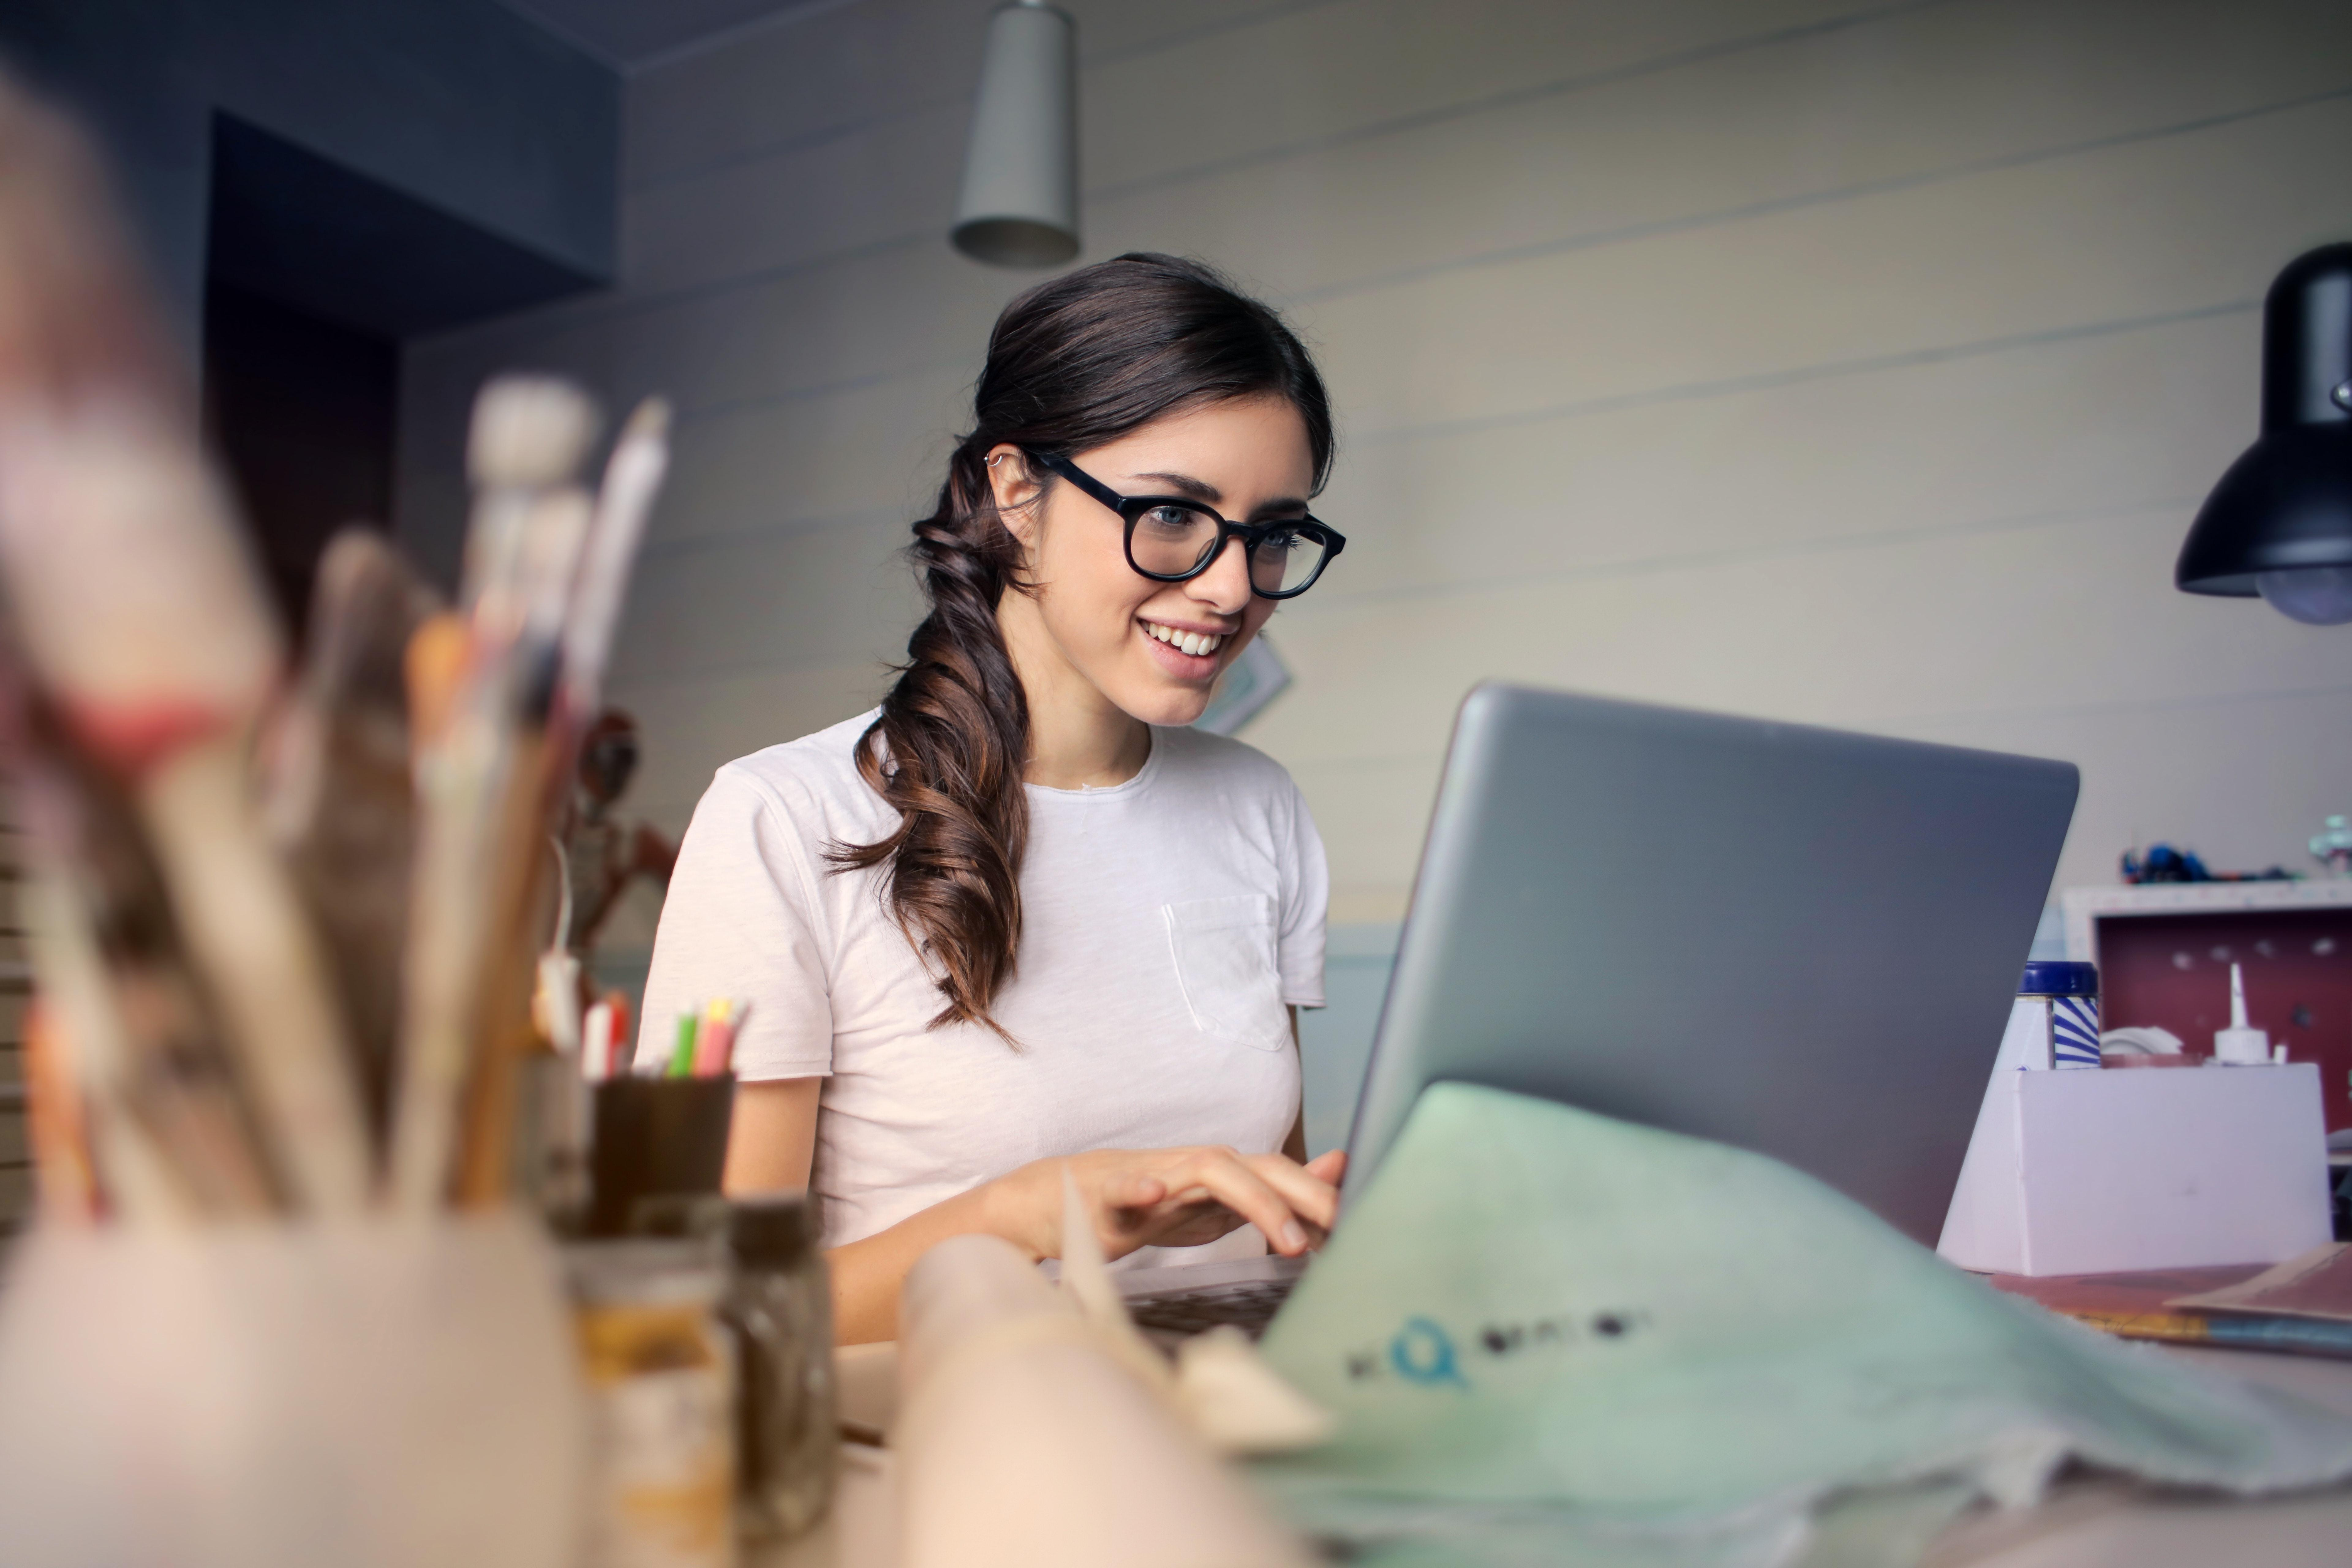 Happy Woman in office with laptop